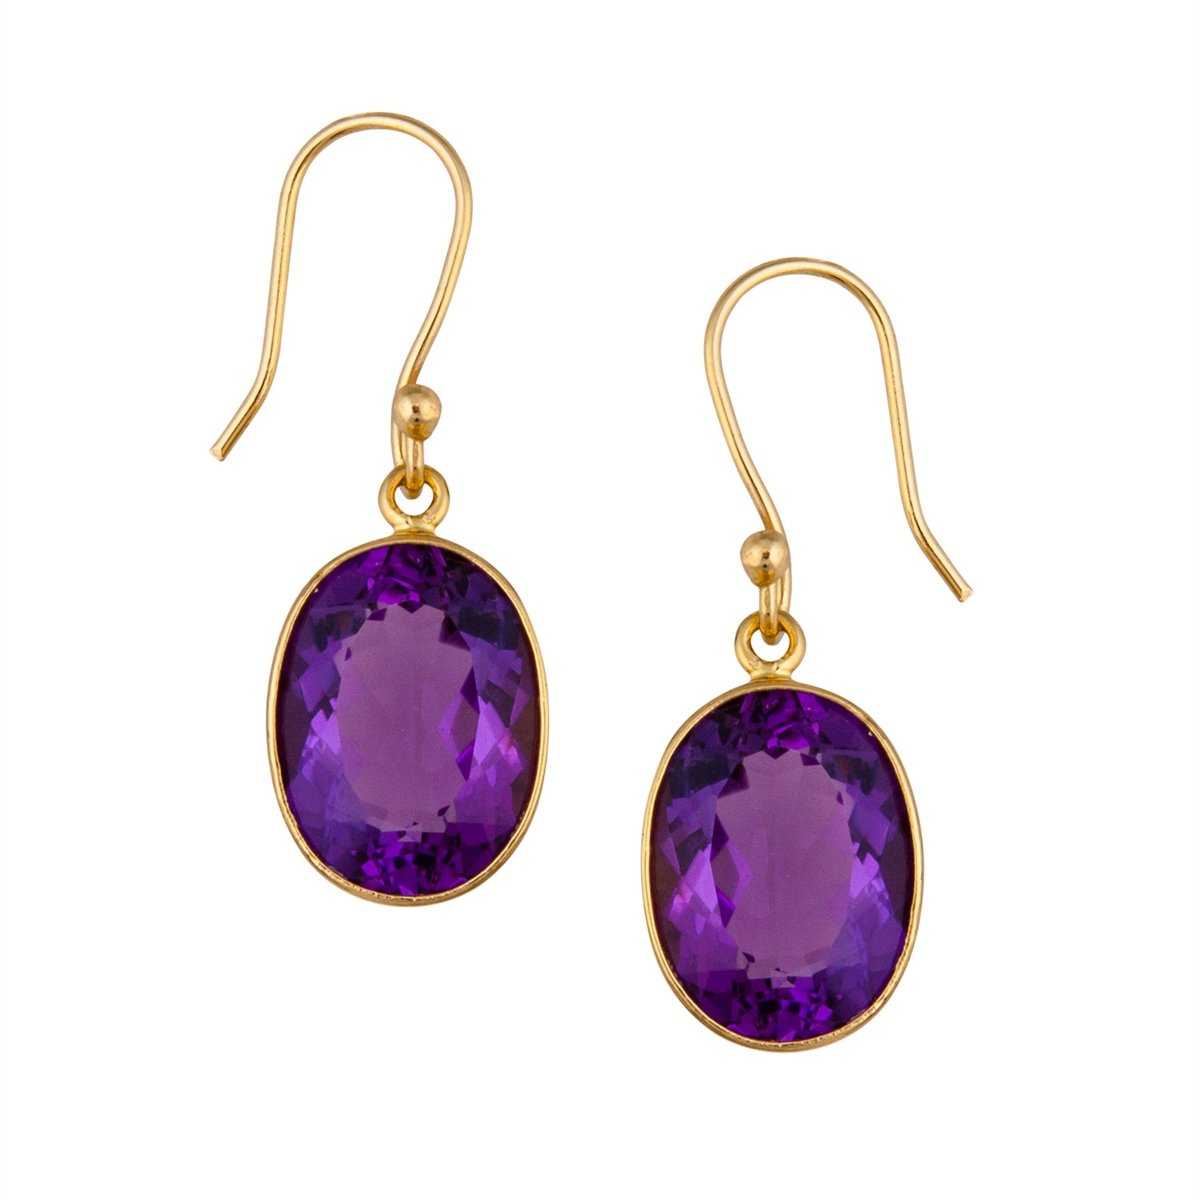 alchemia-amethyst-drop-earrings - 1 - Charles Albert Inc